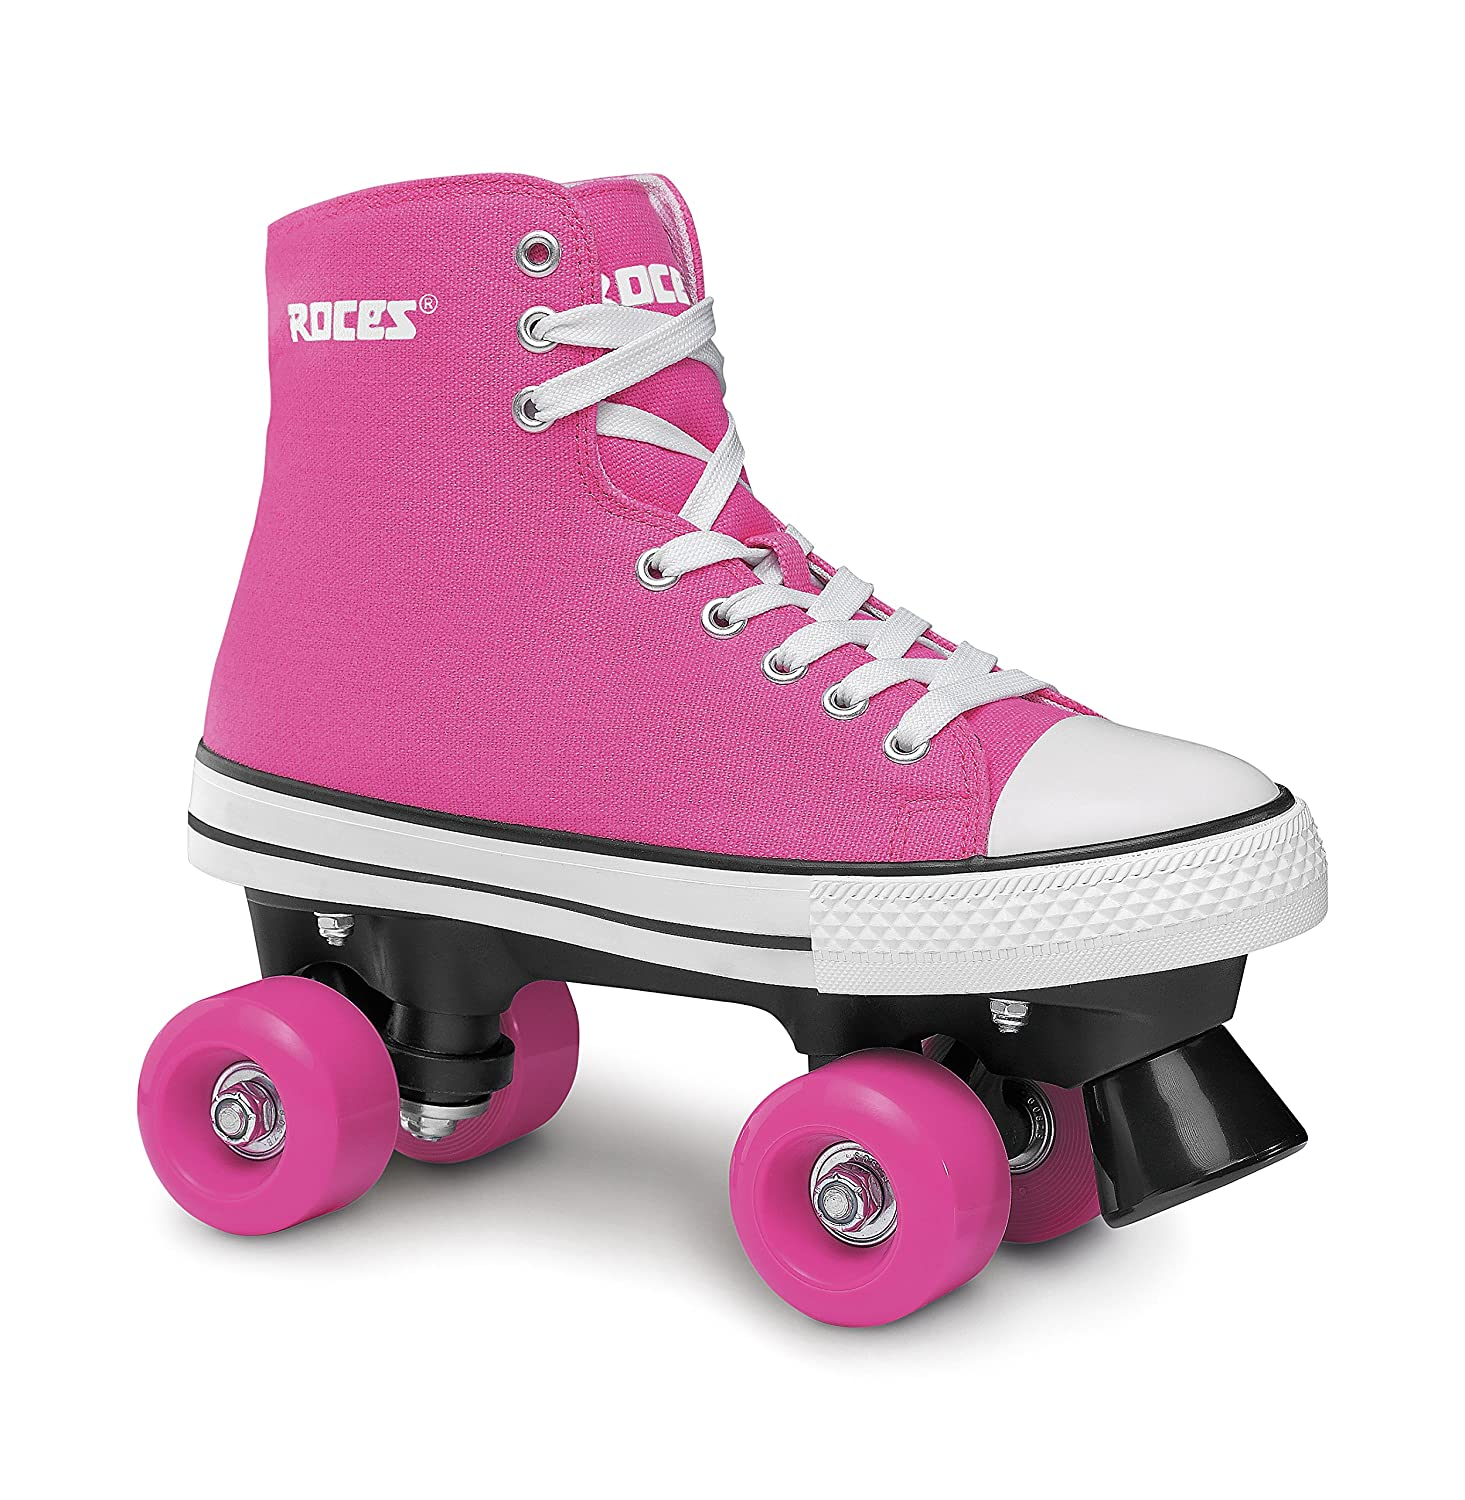 Rookie roller skates amazon - Roces Chuck Classic Roller Skating Roller Skate Street